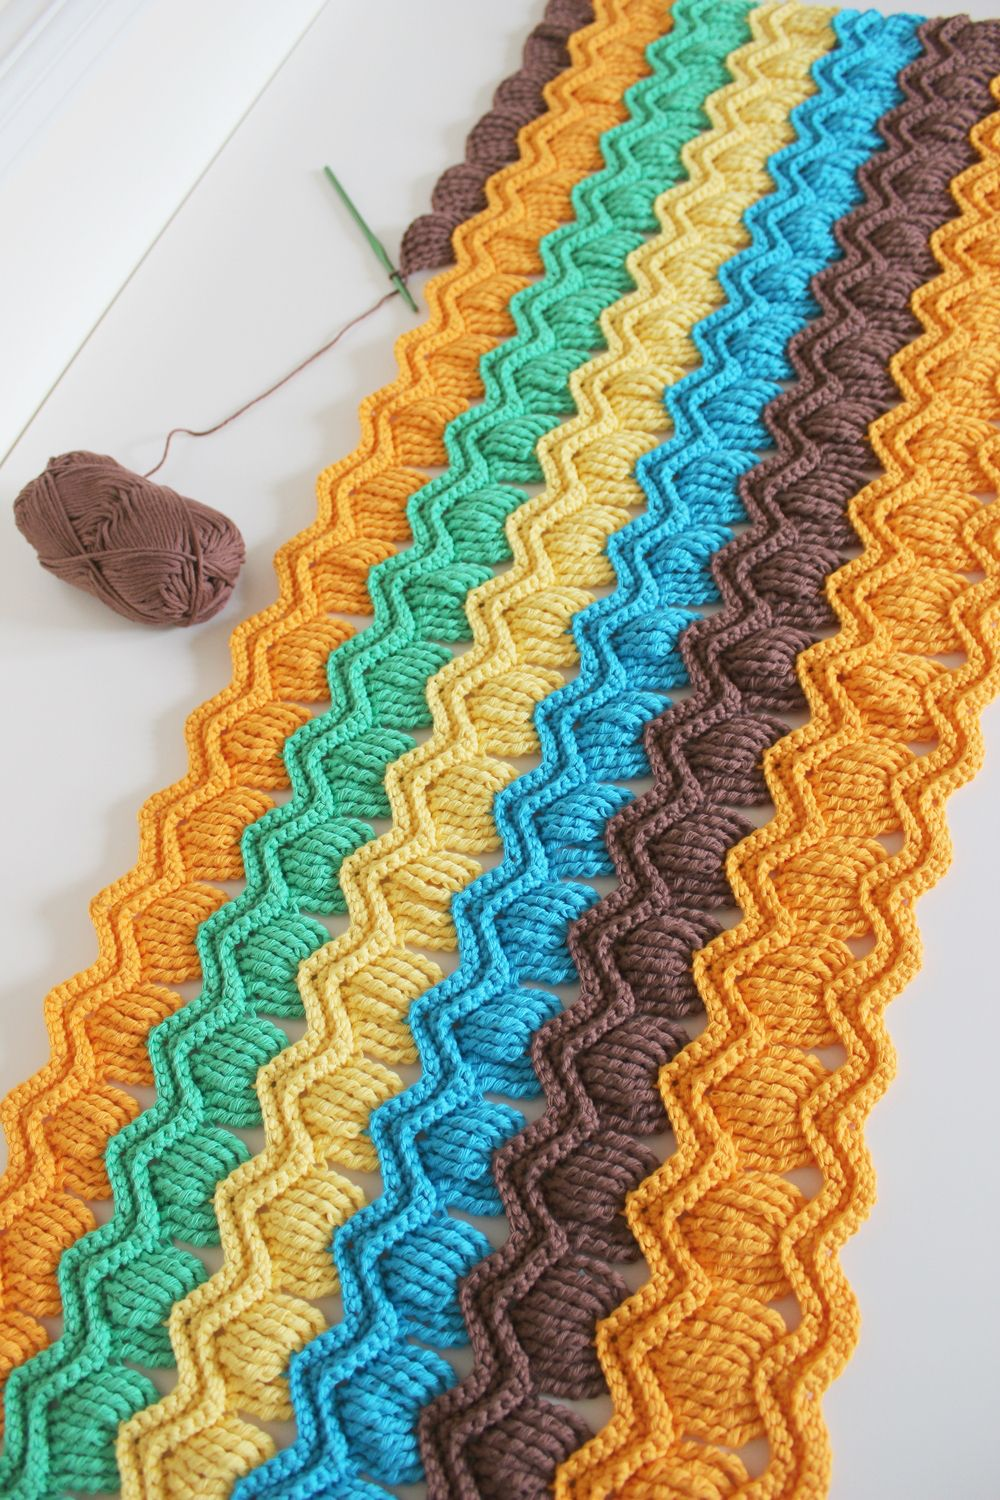 Crochet Fan Ripple Blanket  The Pattern Is Free On Ravelry (linked From  This Post